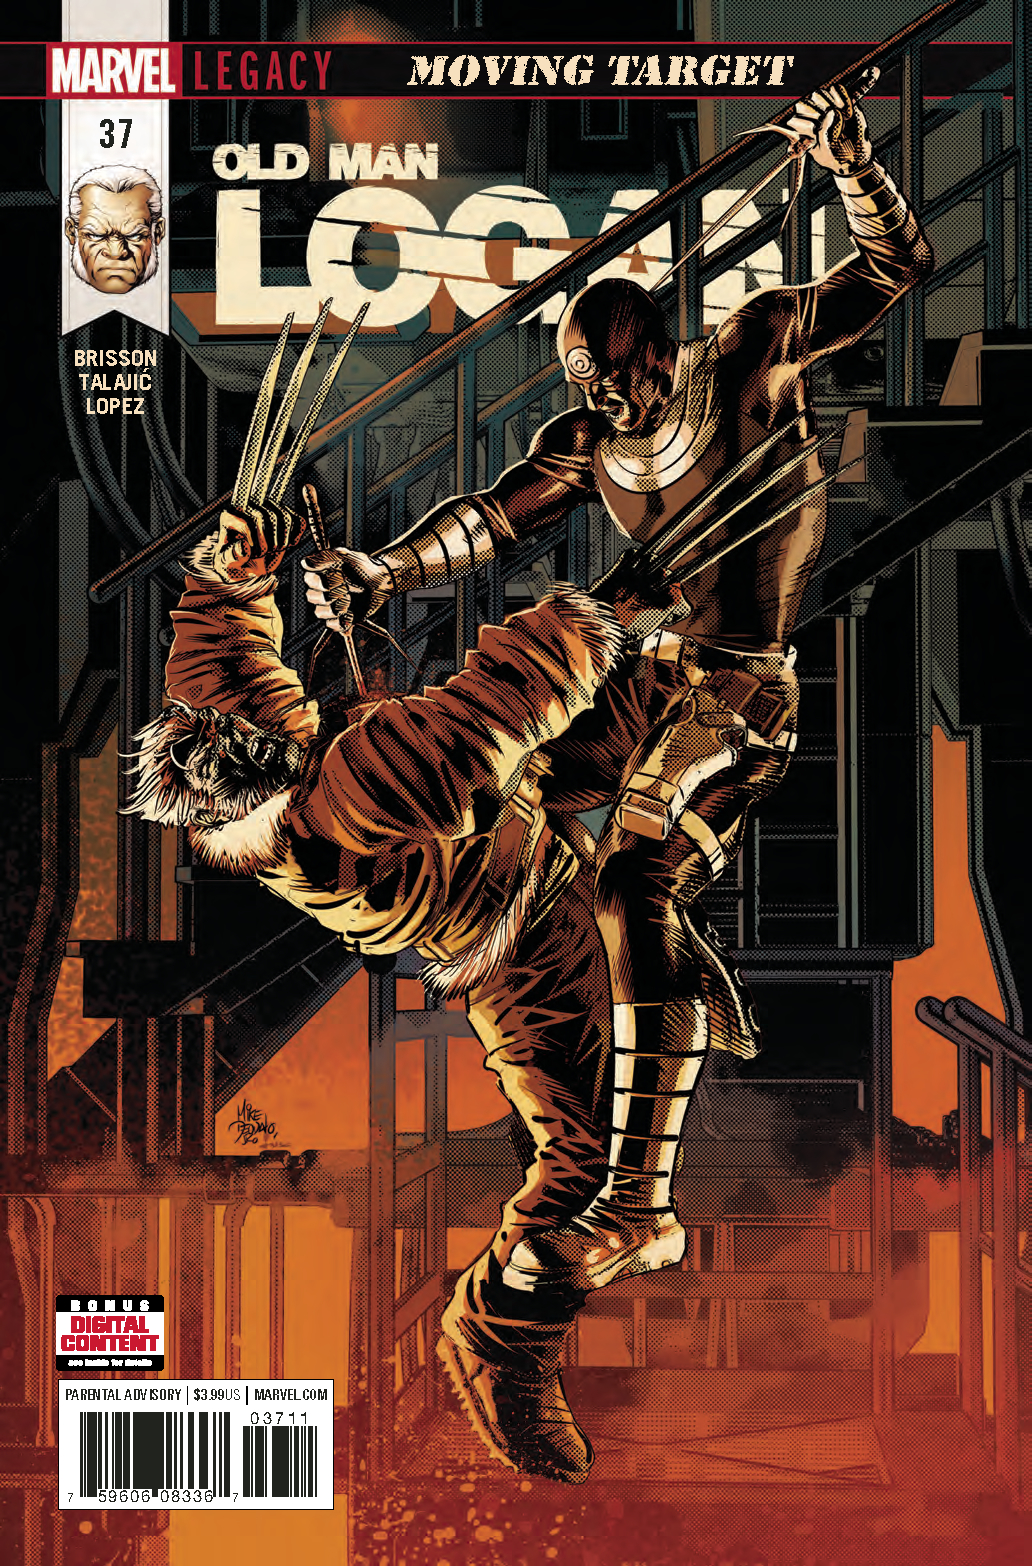 OLD MAN LOGAN #37 LEG